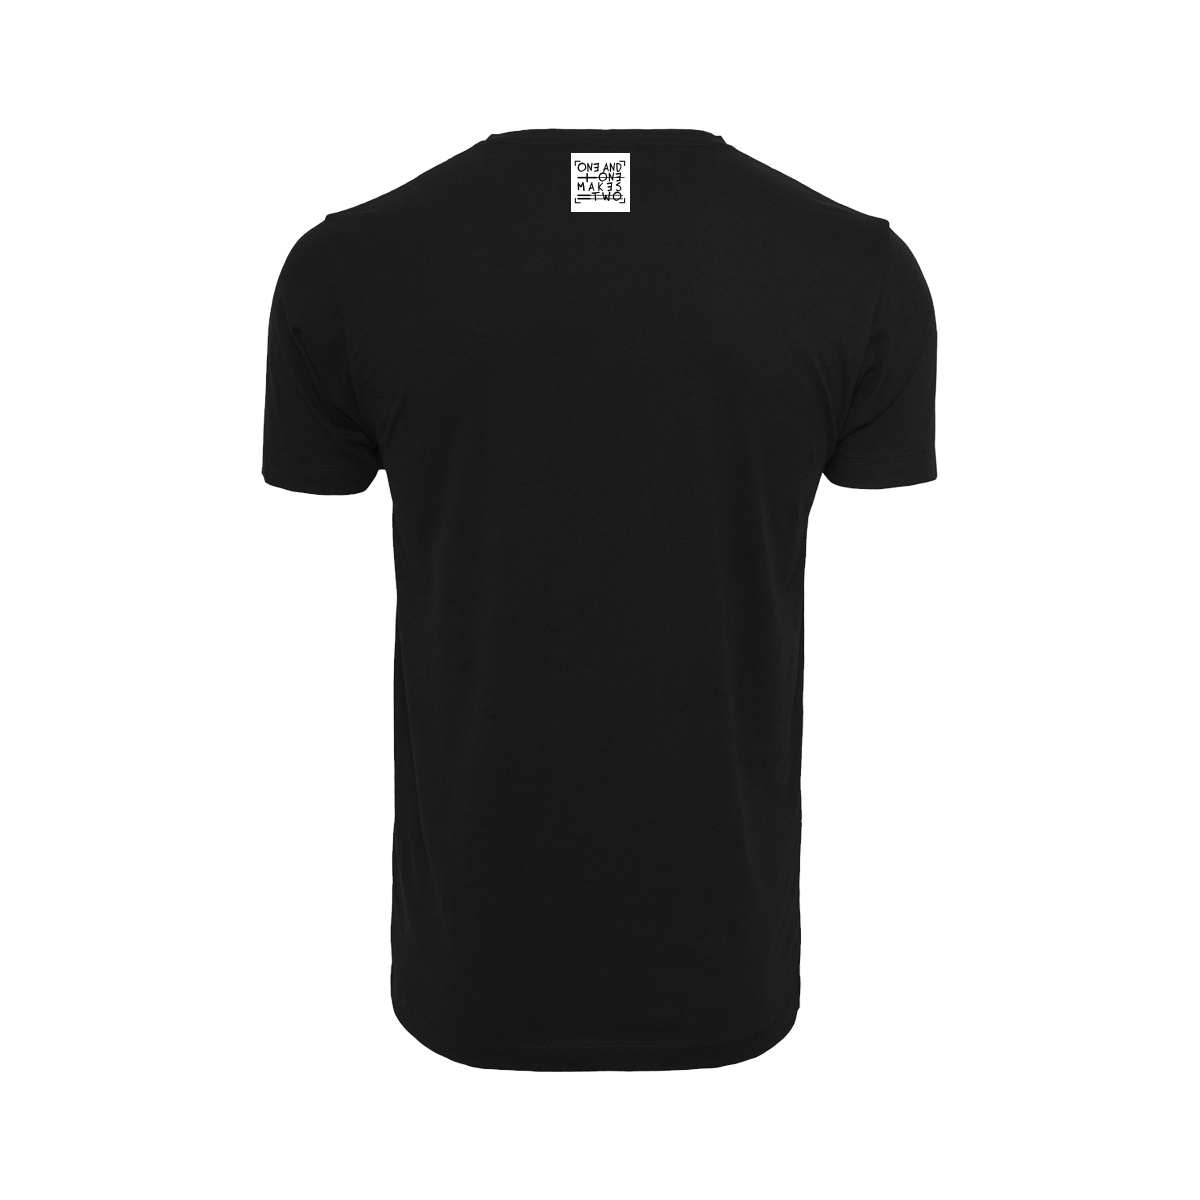 ONE AND ONE MAKES TWO - T-shirt - BLK back - Frank Willems